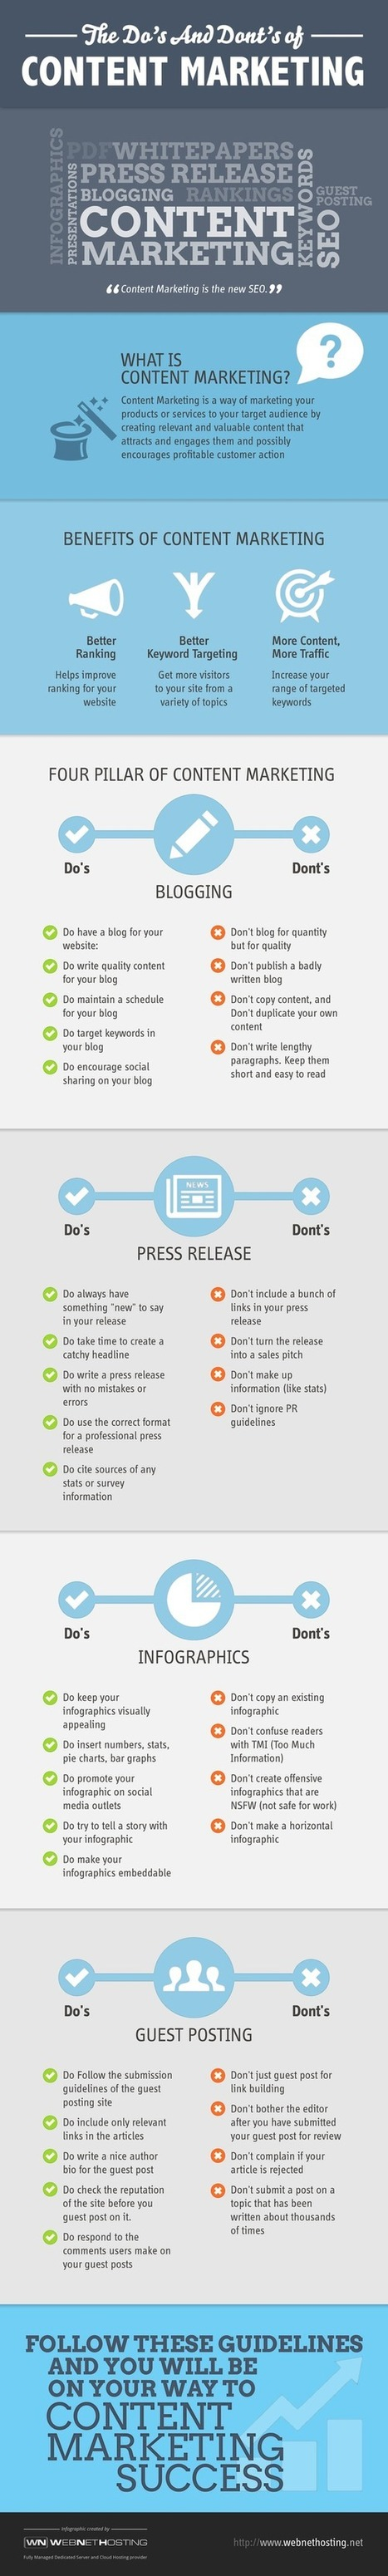 The Do's and Dont's of Content Marketing - Infographic | Winning Digital Strategies | Scoop.it